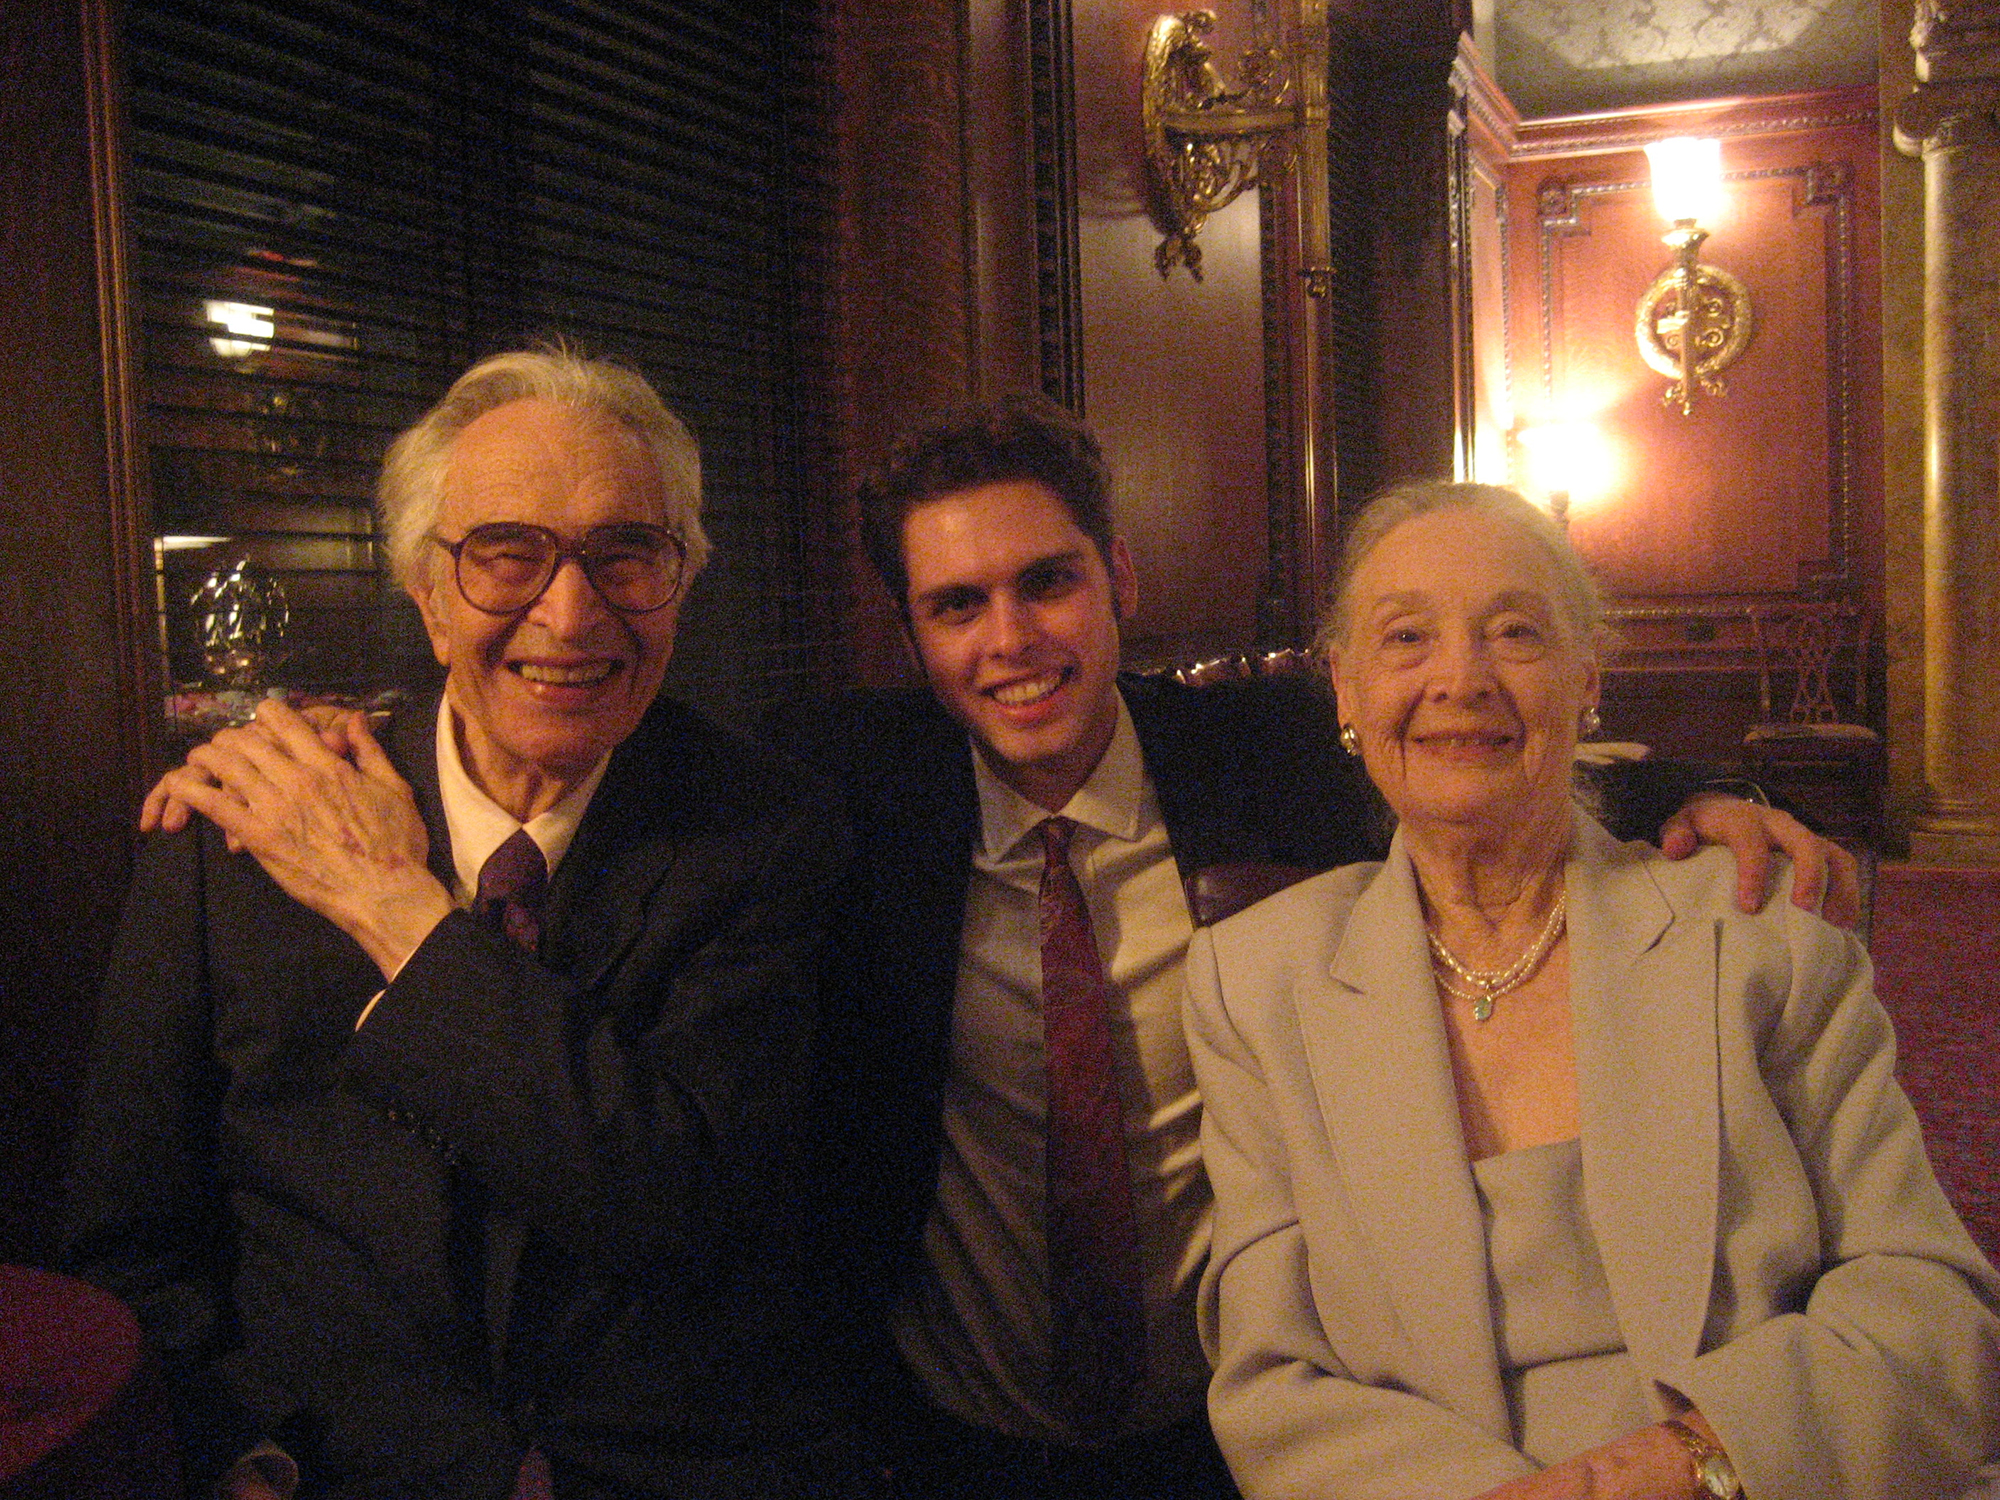 Ben with Dave and Iola Brubeck, 2007